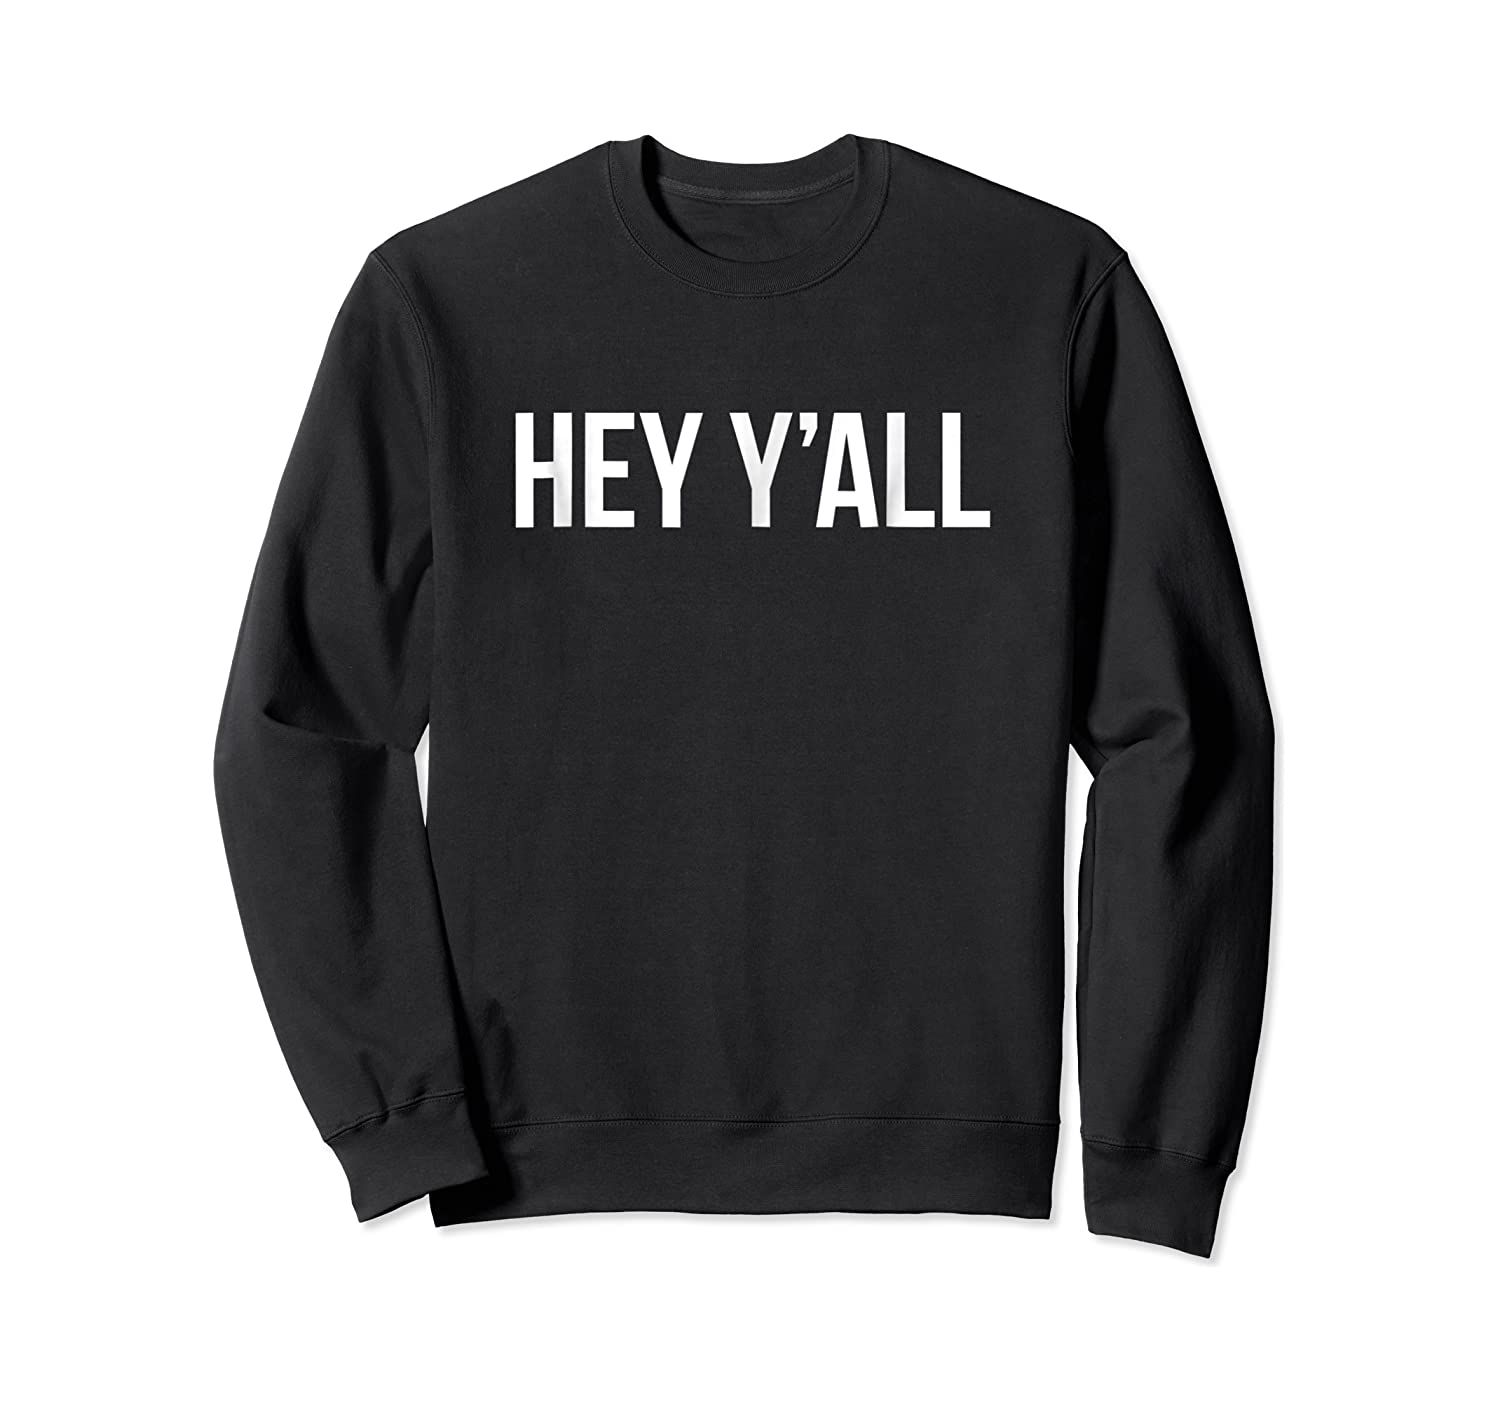 Hey Y'all Southern Accent South Hey You All Shirts Crewneck Sweater